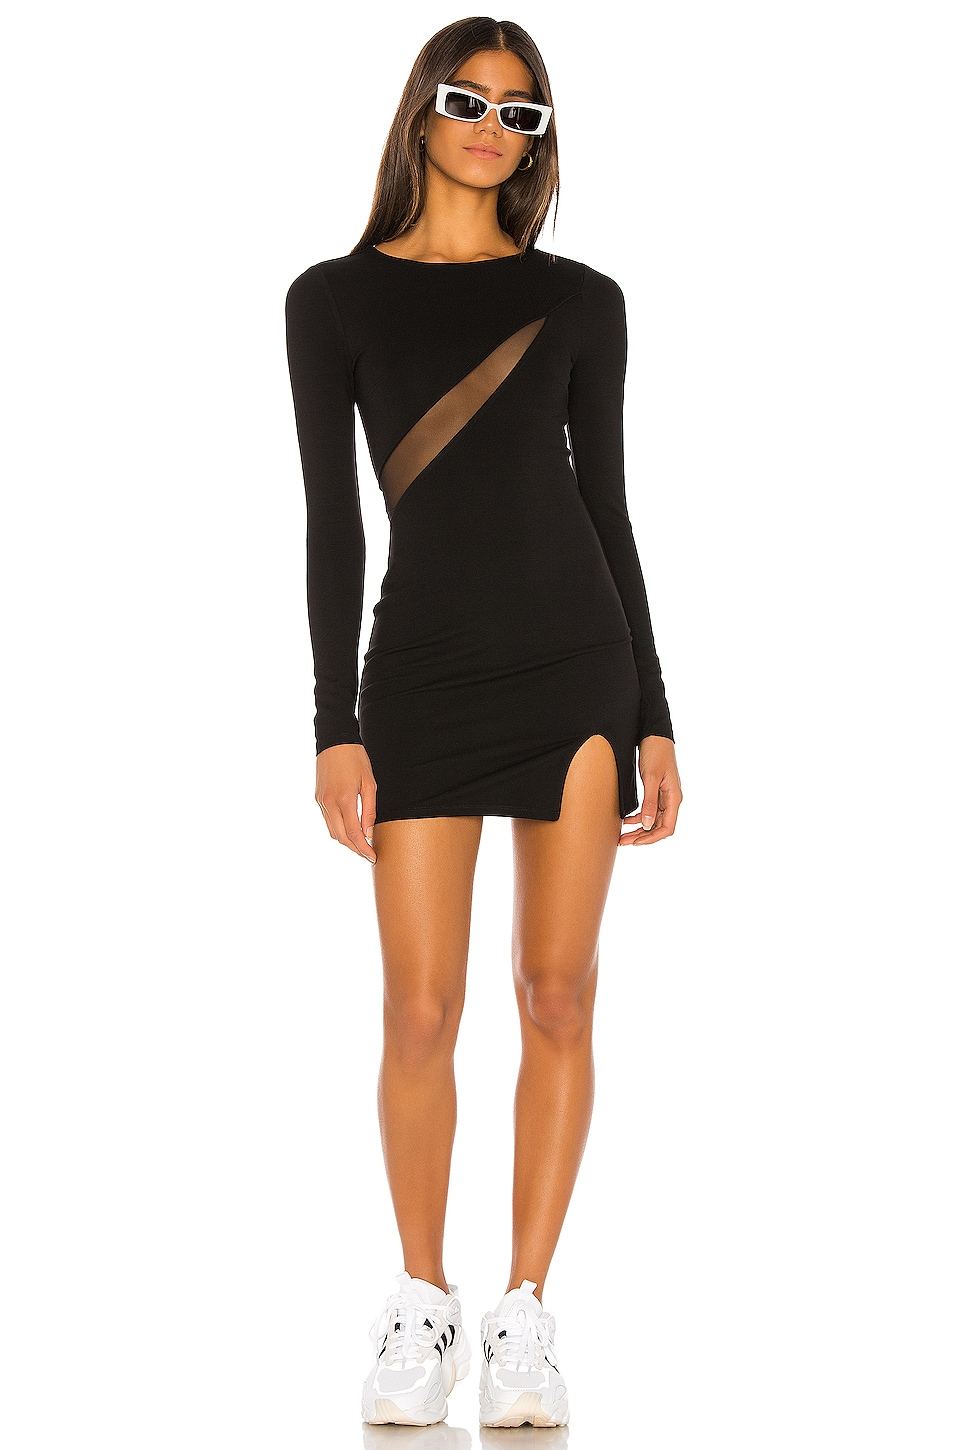 h:ours Omnia Dress in Black